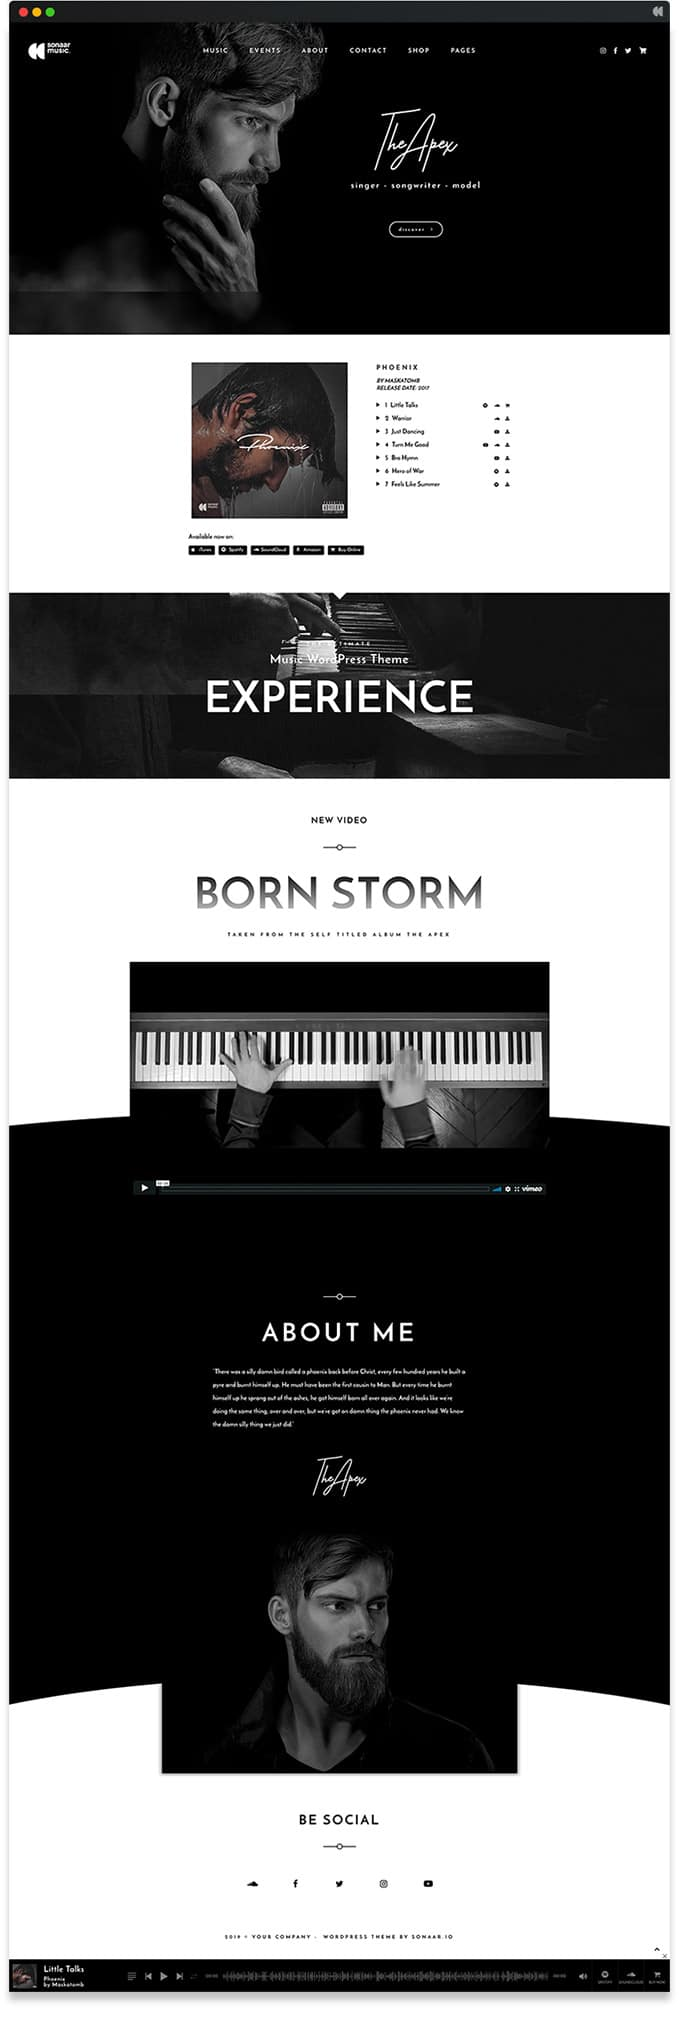 Apex - Best Music WordPress Theme Free